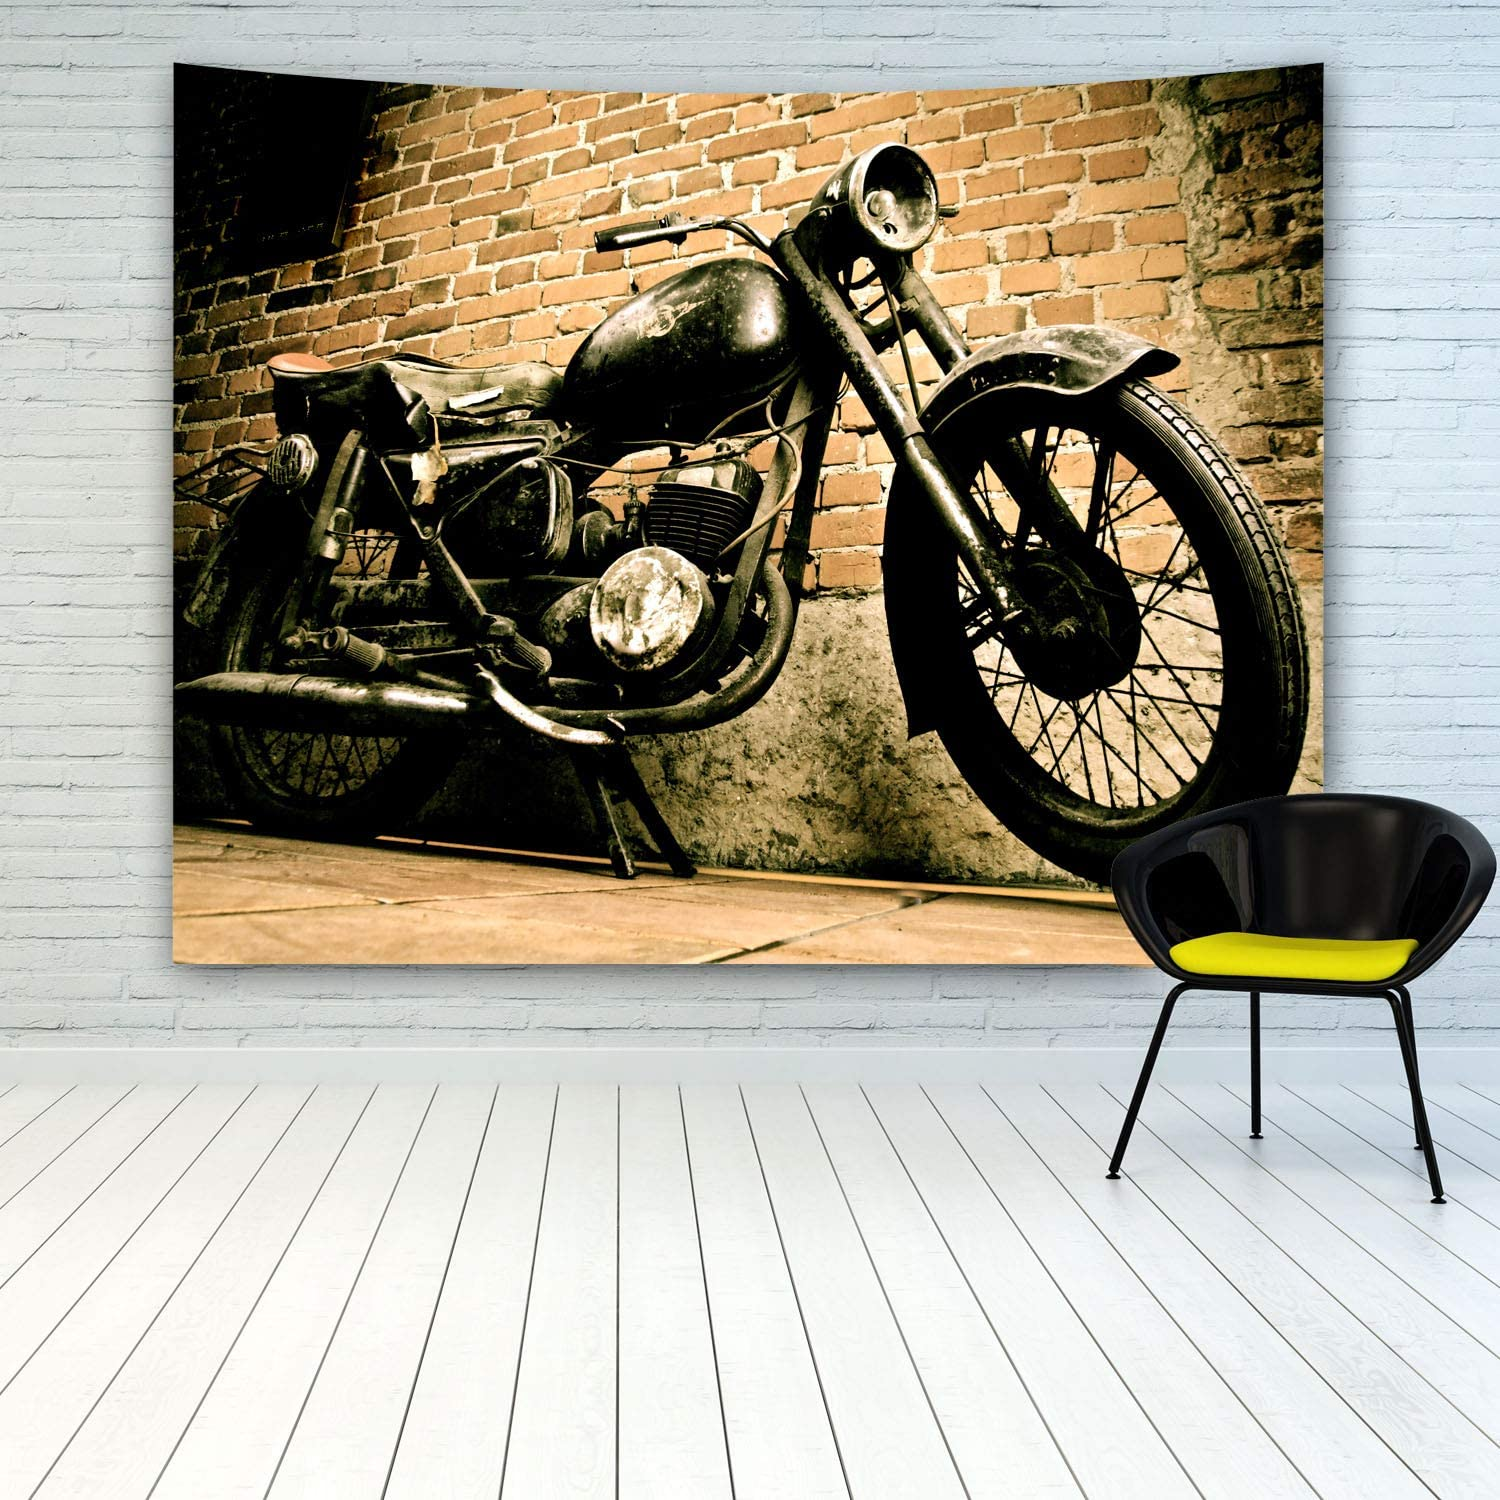 MINAKO Vintage Retro Motorcycle Tapestry Wall Hanging,Old Grunge Motorbike Near Antique Brick Wall Tapestry for Bedroom Living Room College Dorm Home Decoration Wall Decor Art Tapestries